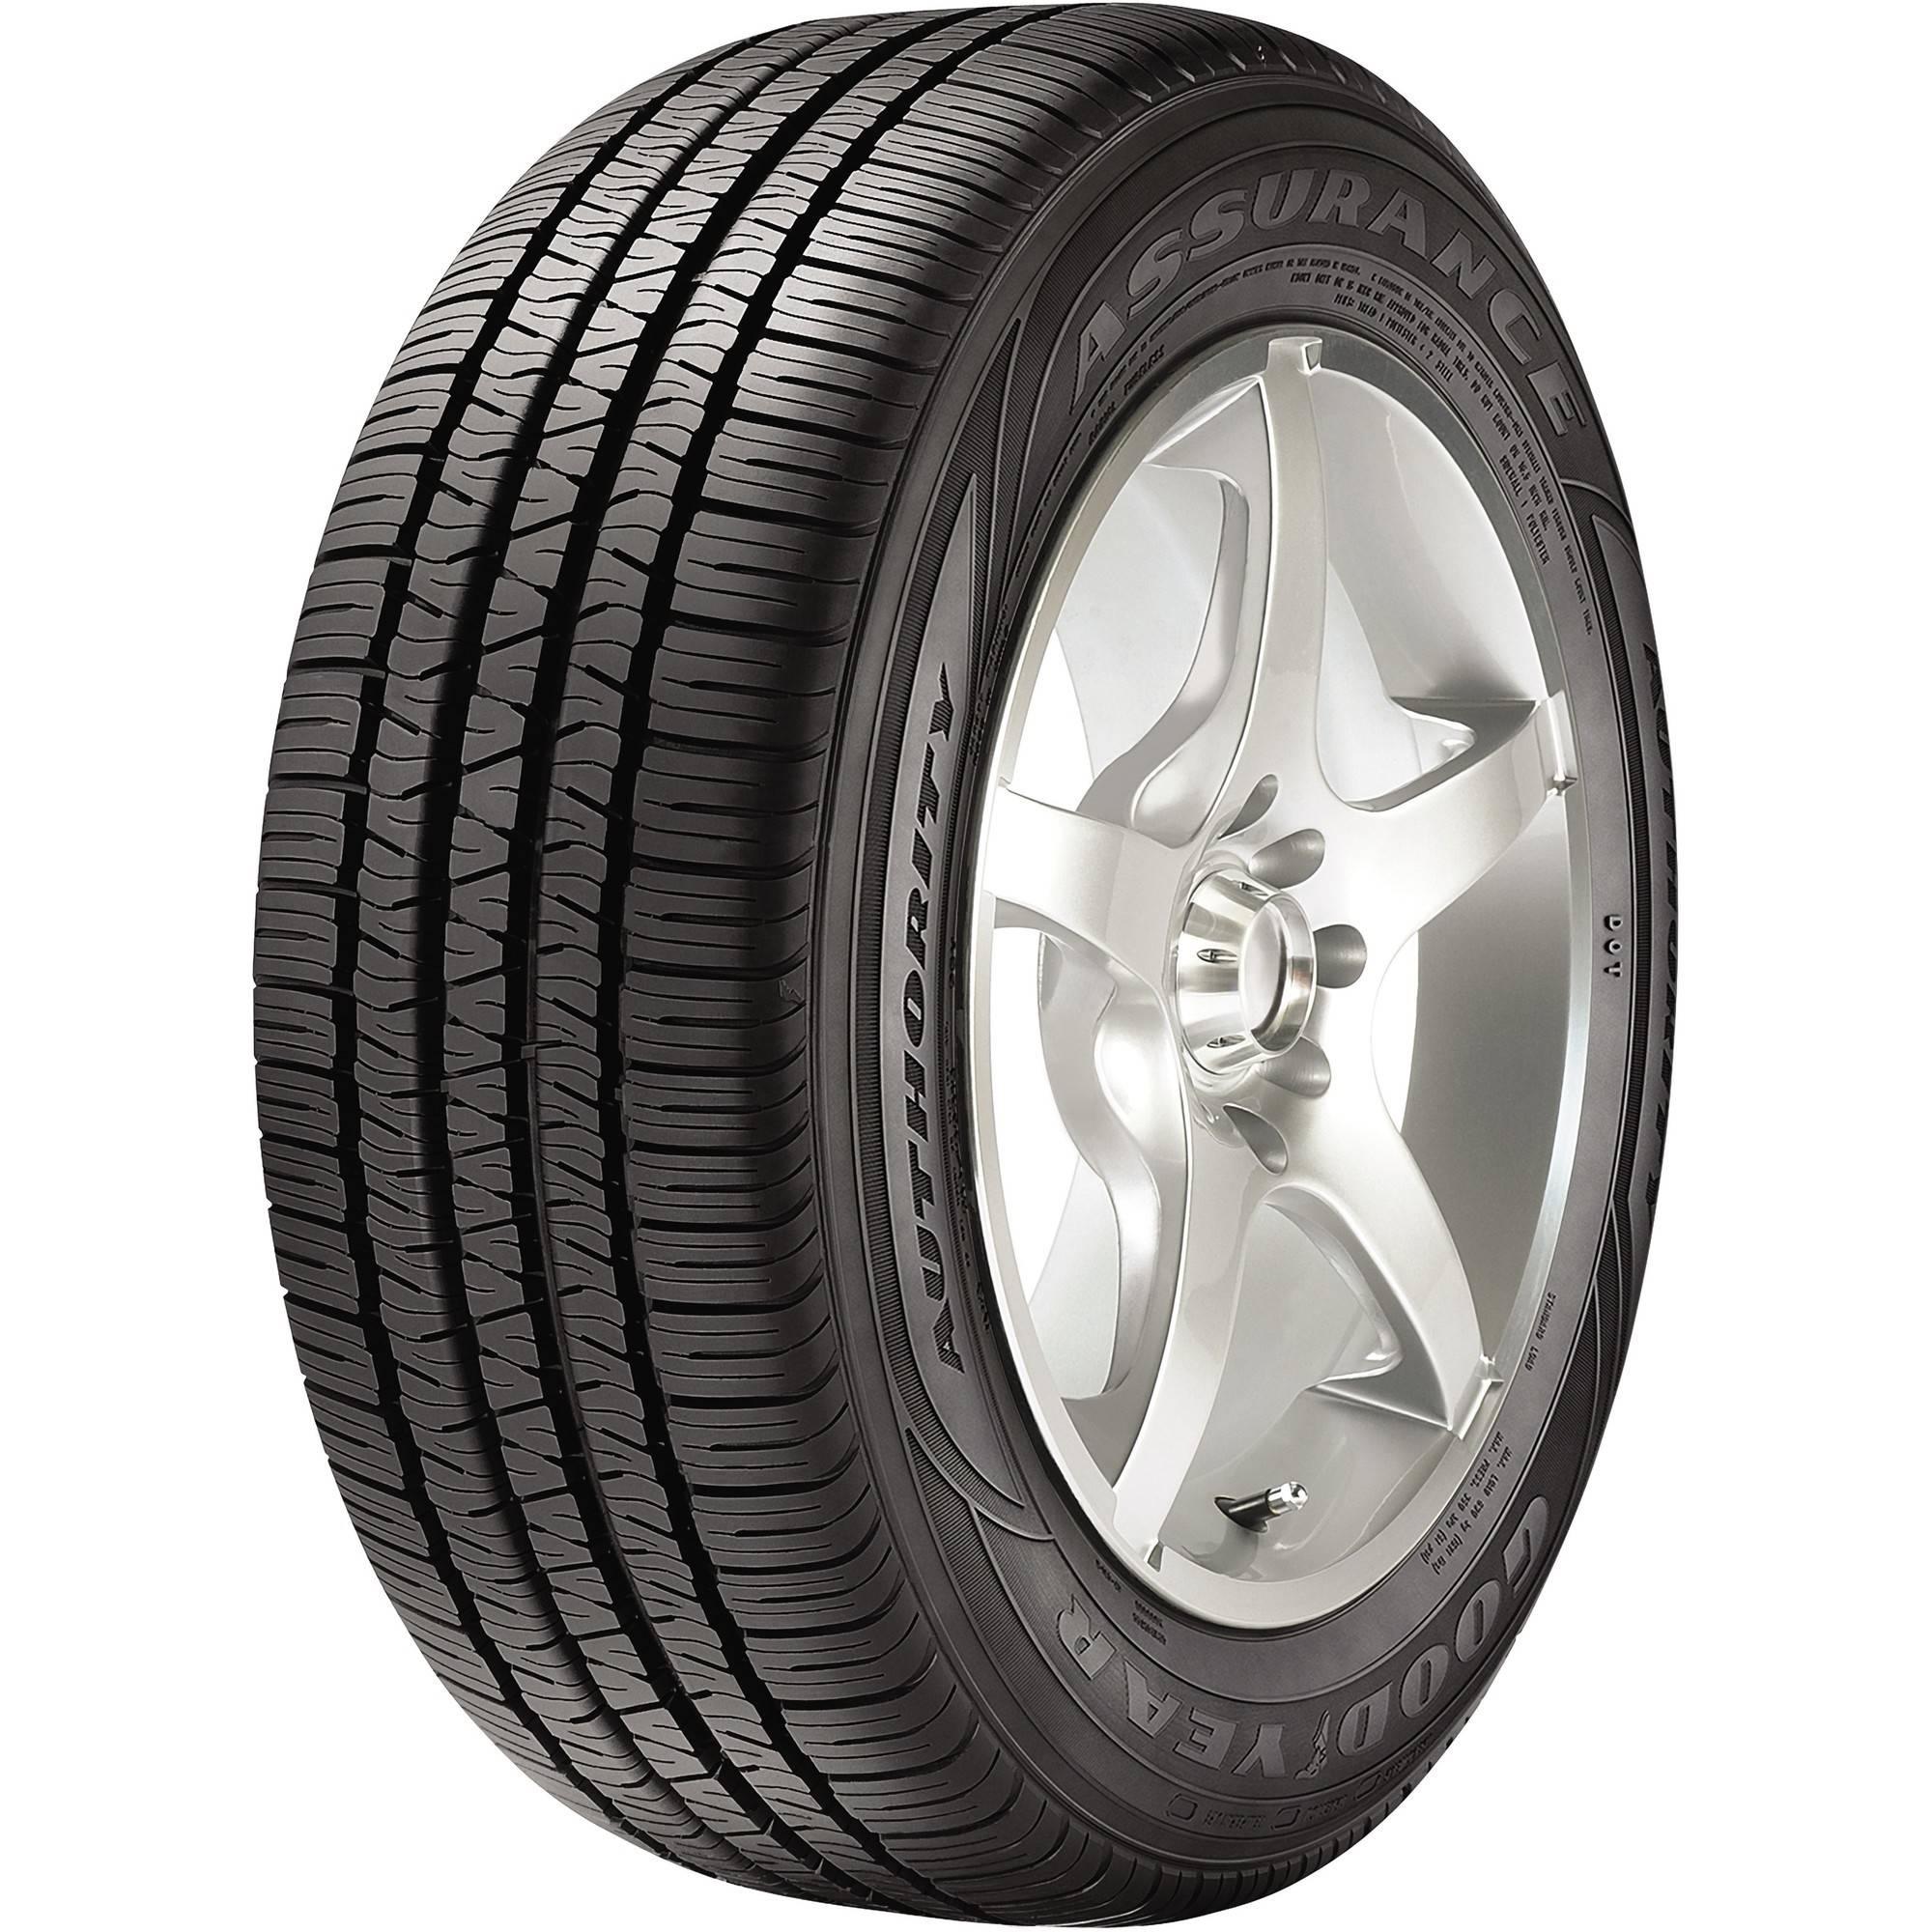 Goodyear Assurance Authority Tire 235/65R16  103T